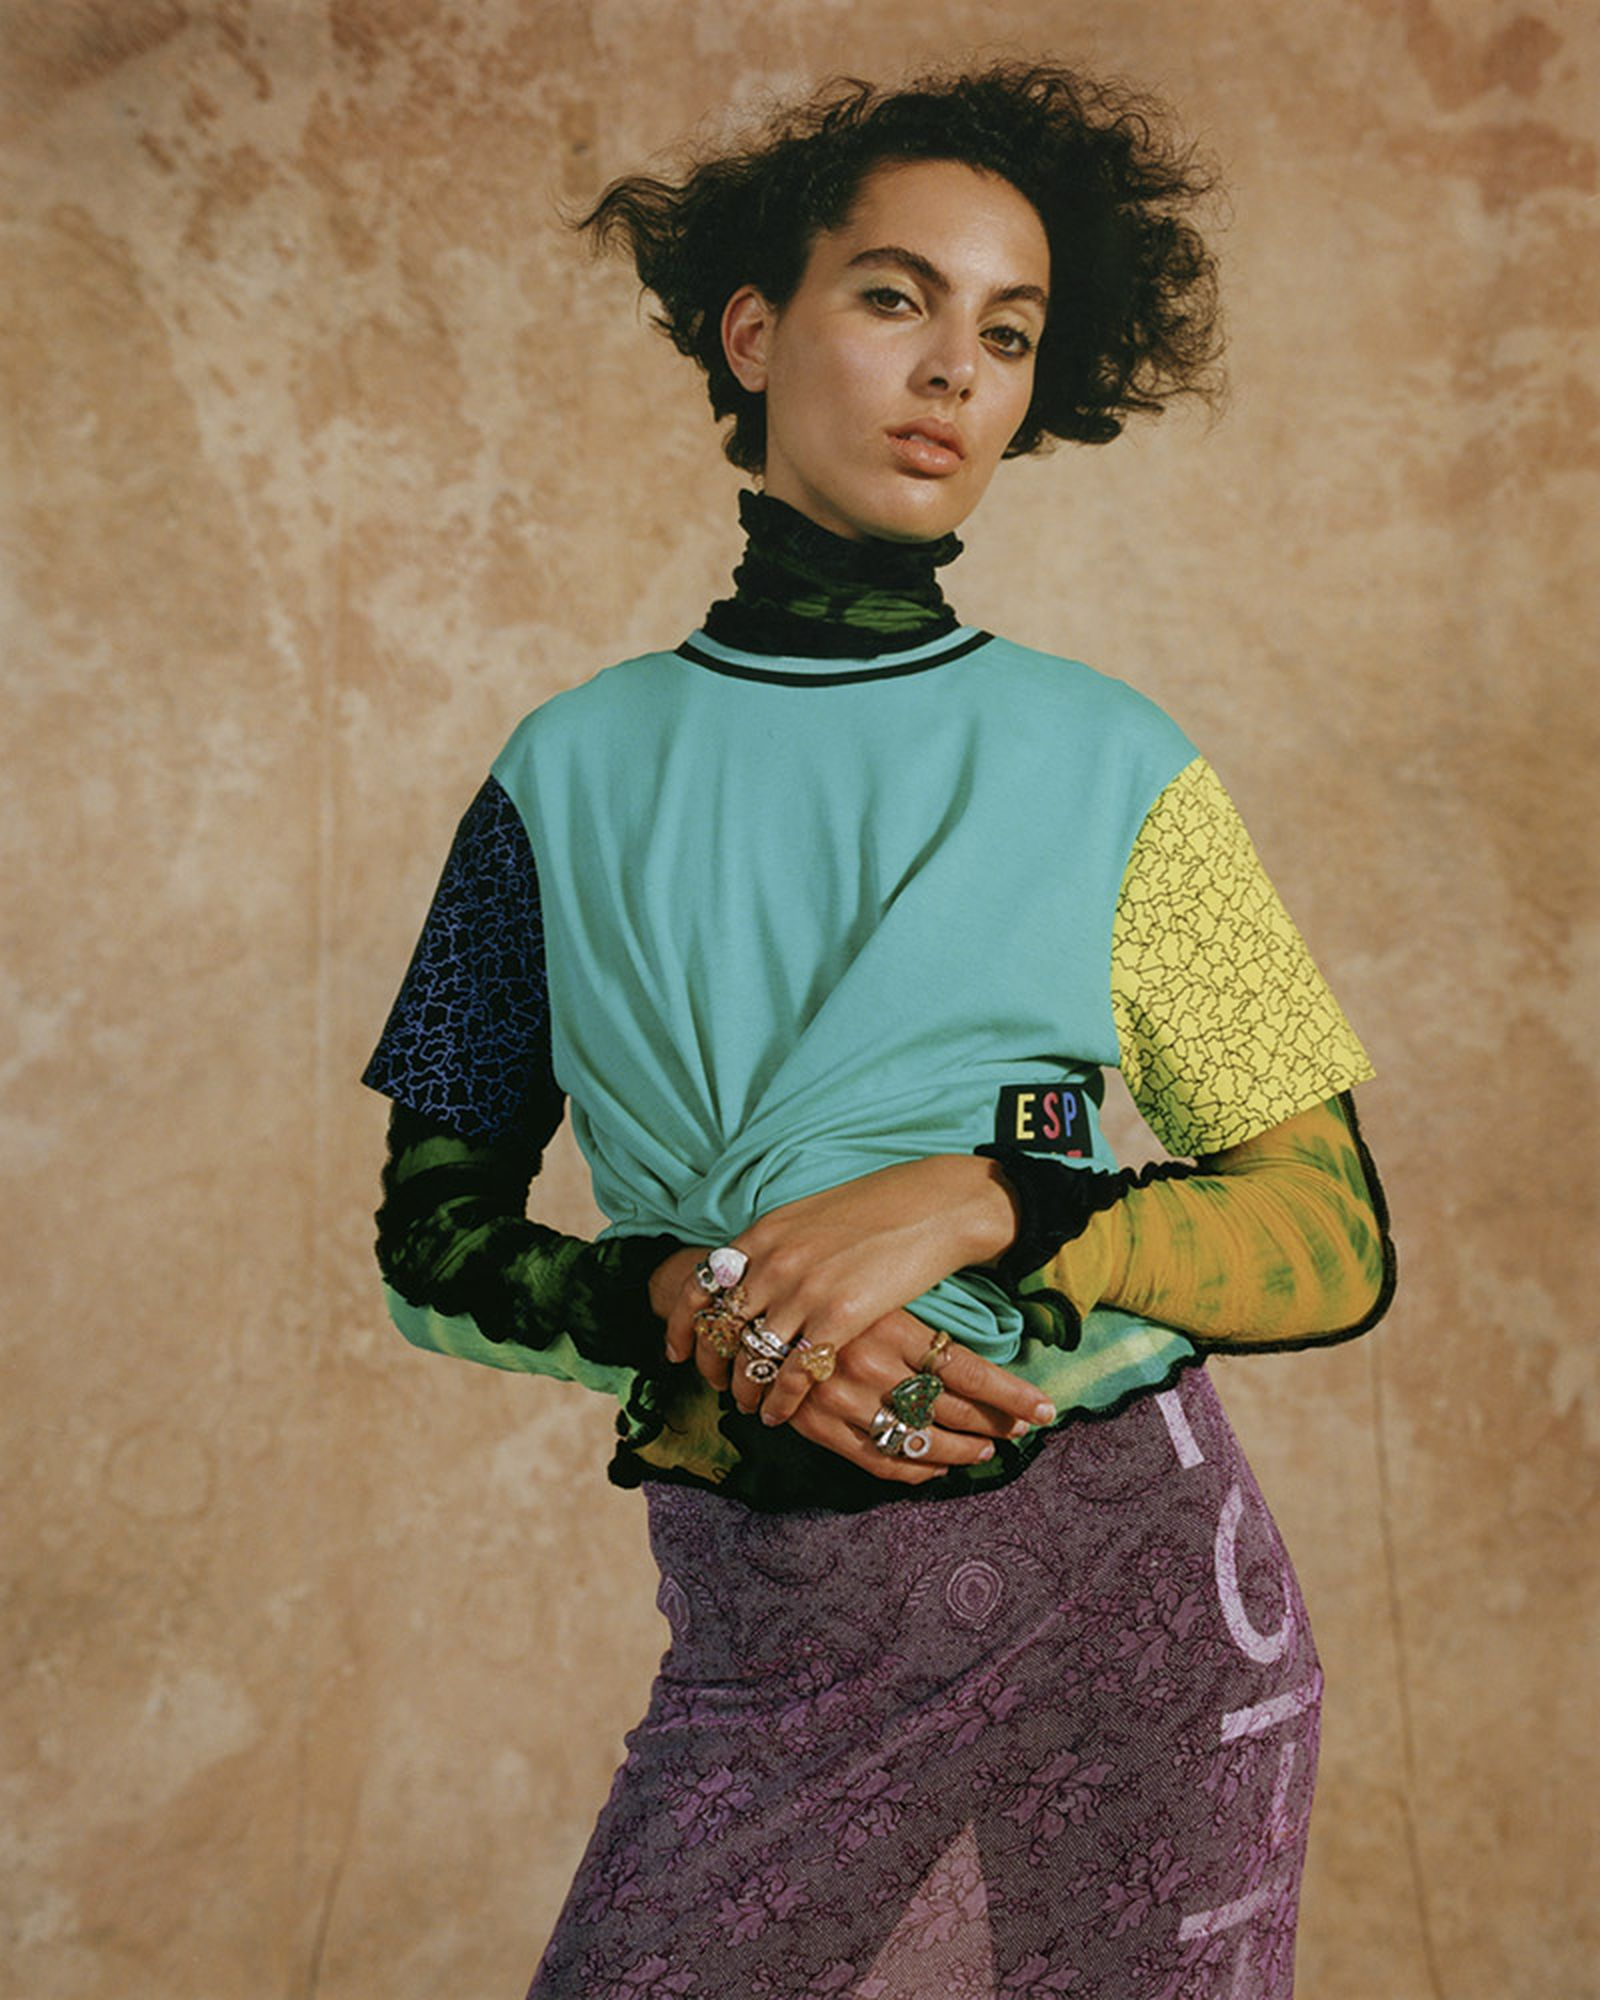 esprit-championed-inclusivity-conscious-style-long-everyone-else-heres-0